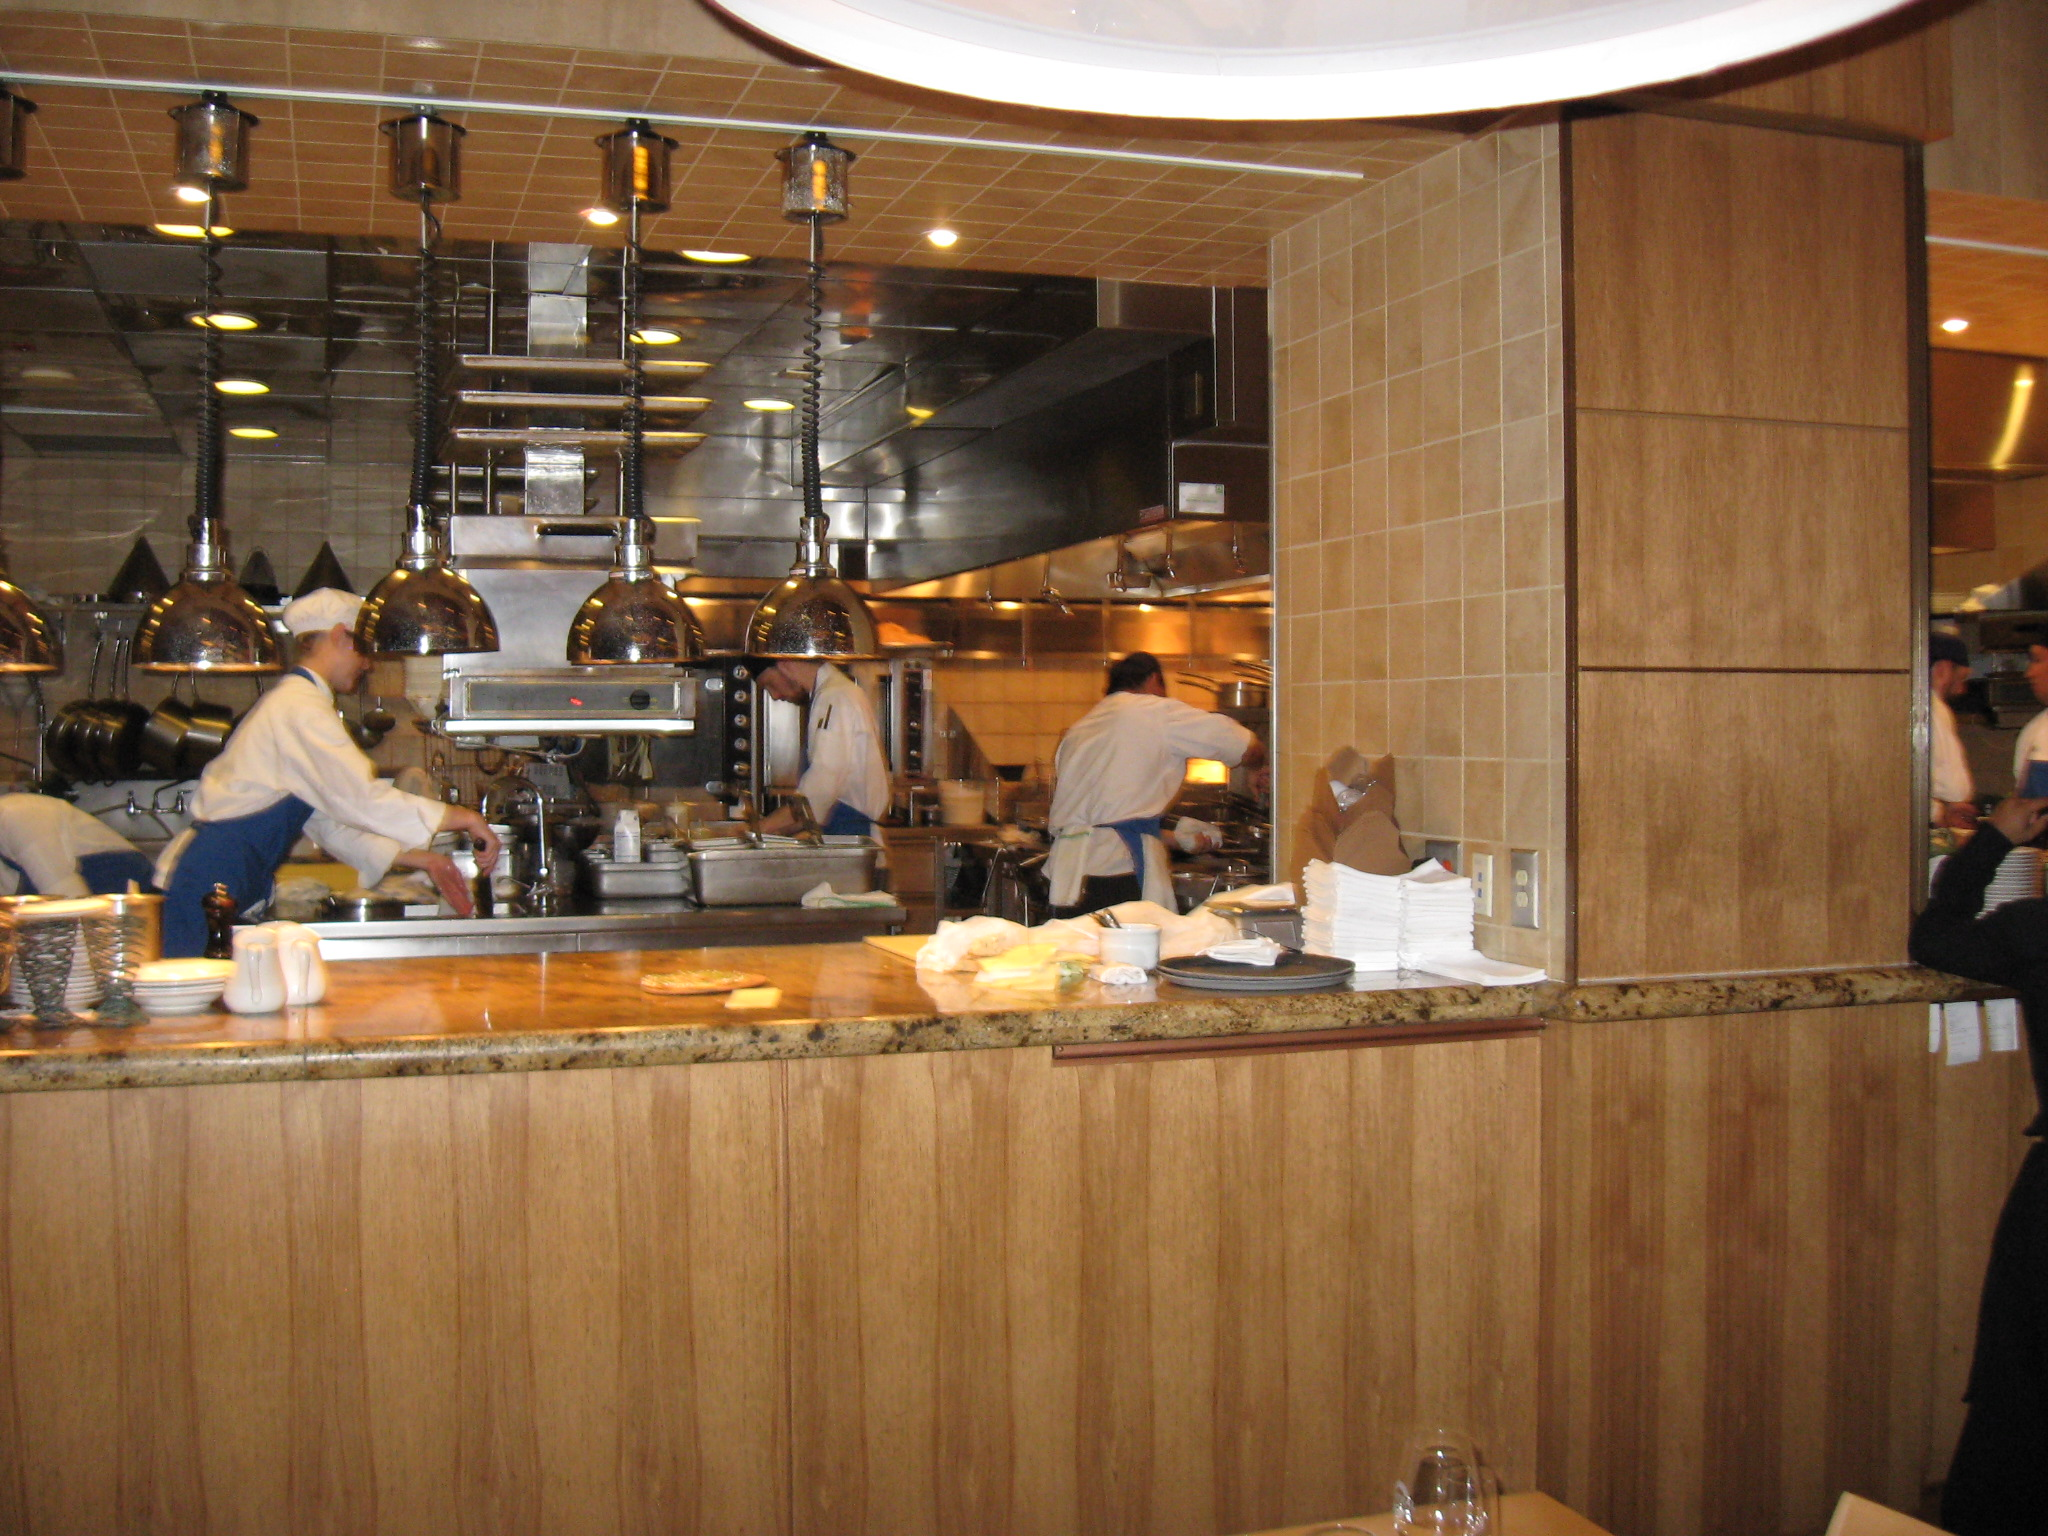 District of columbia refined palate Kitchen design for fast food restaurant